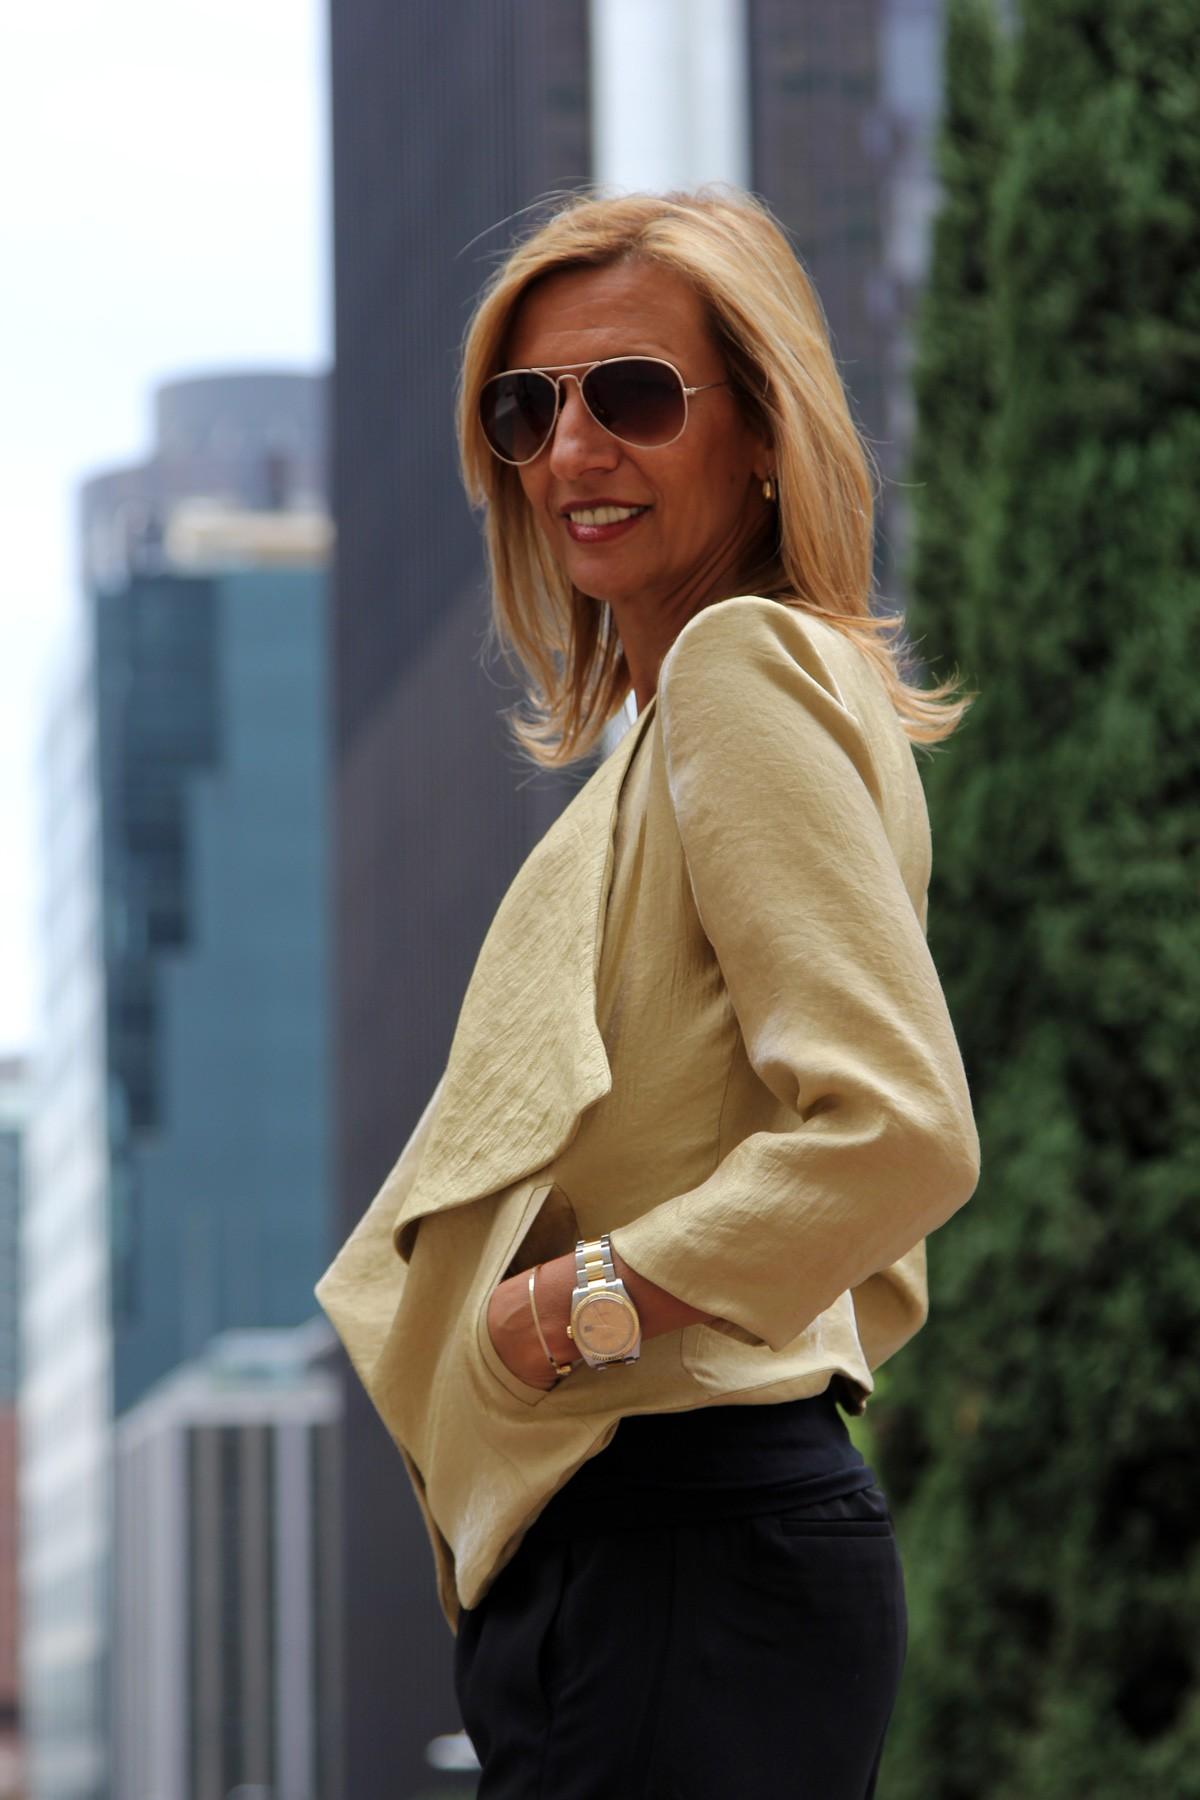 visiting-downtown-los-angeles-wearing-my-soleil-jacket-www.jacketsociety.com(5)